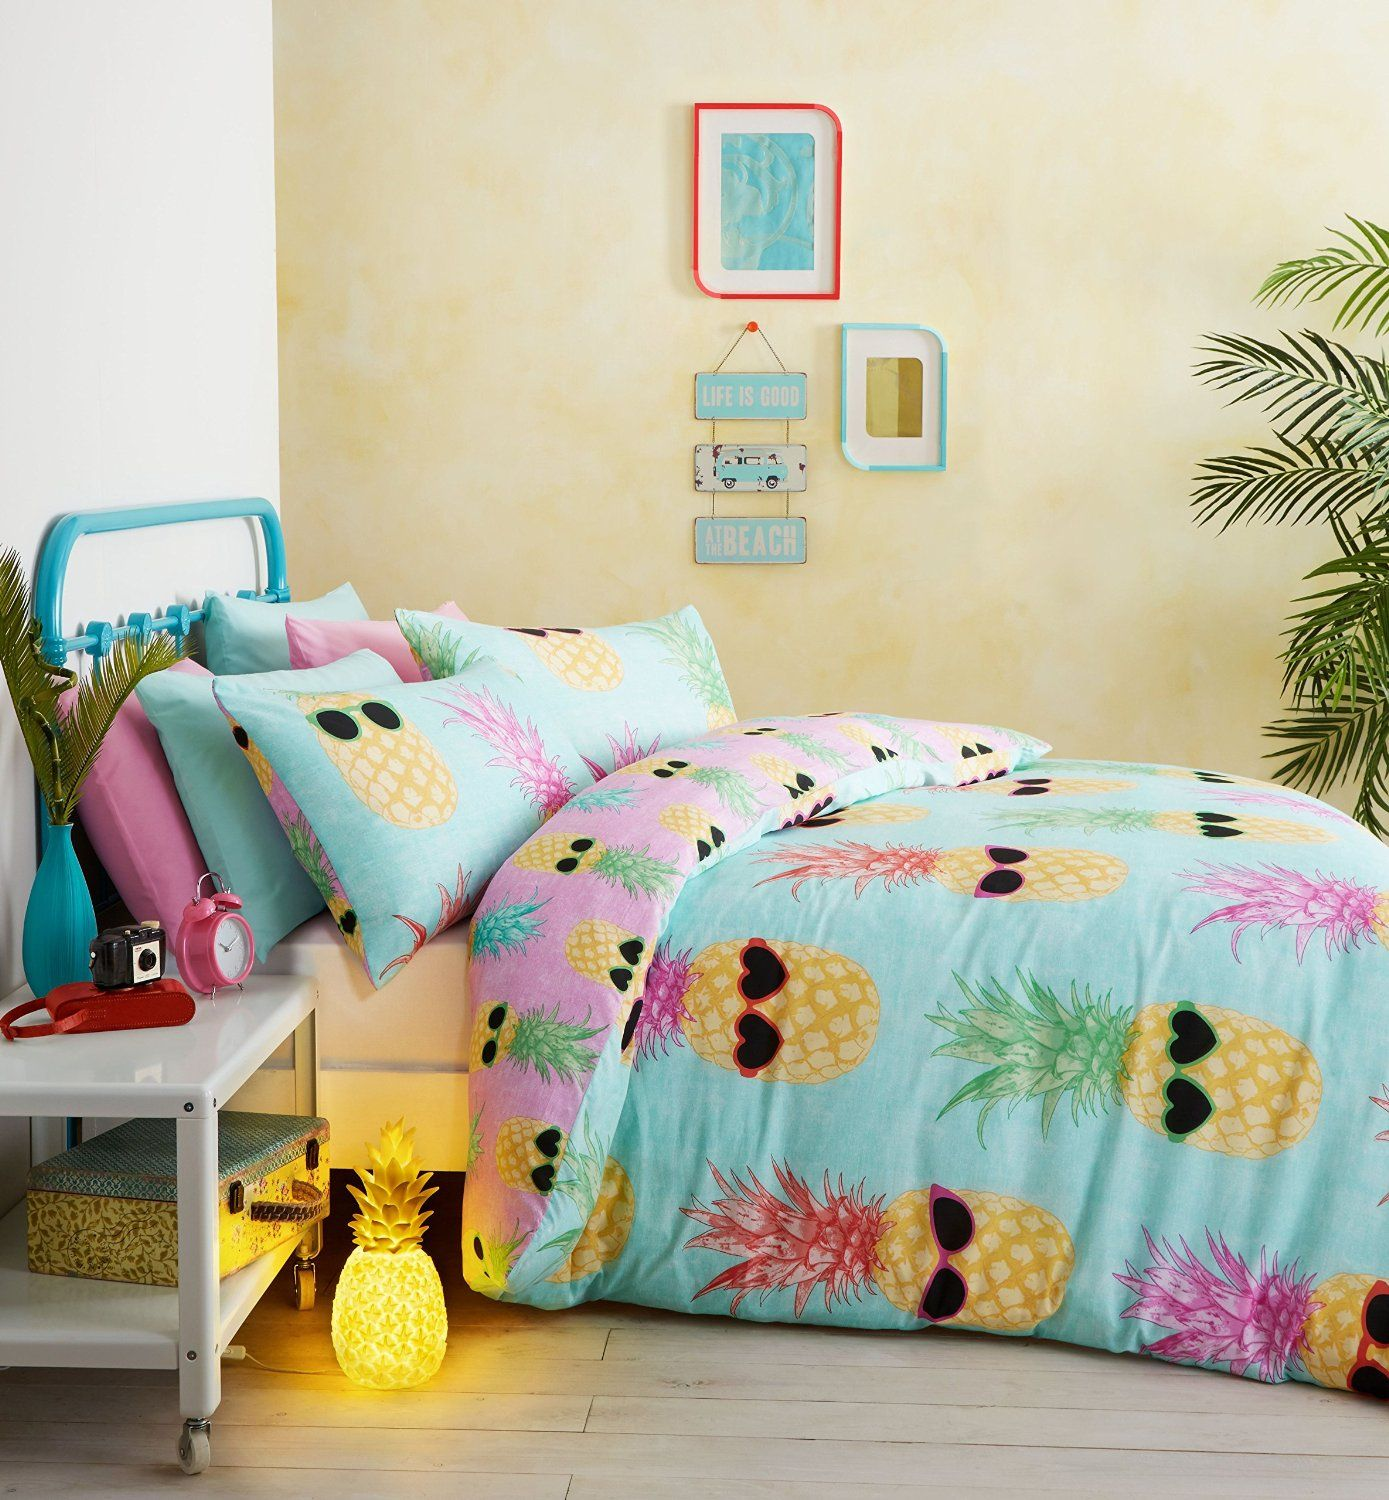 This Bed Set Is Made From Cool Cotton Blended With Naturally Breathable Tencel Fibres Derived The Eucalyptus Tree Organic Properties Of